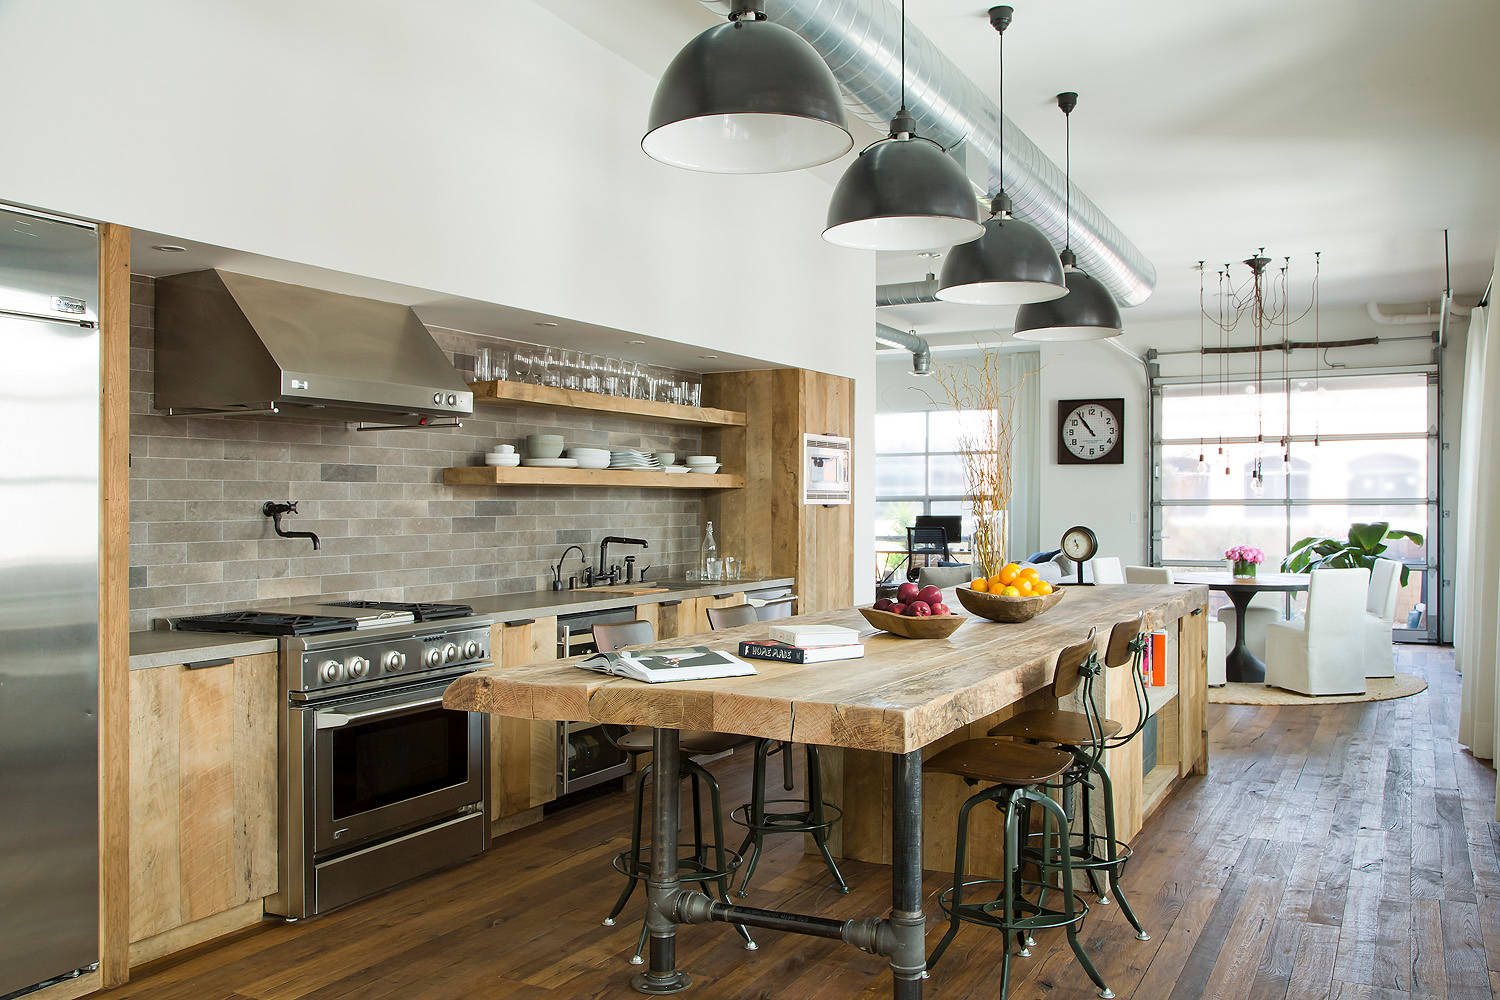 75 Beautiful Industrial Home Design Houzz Pictures Ideas February 2021 Houzz